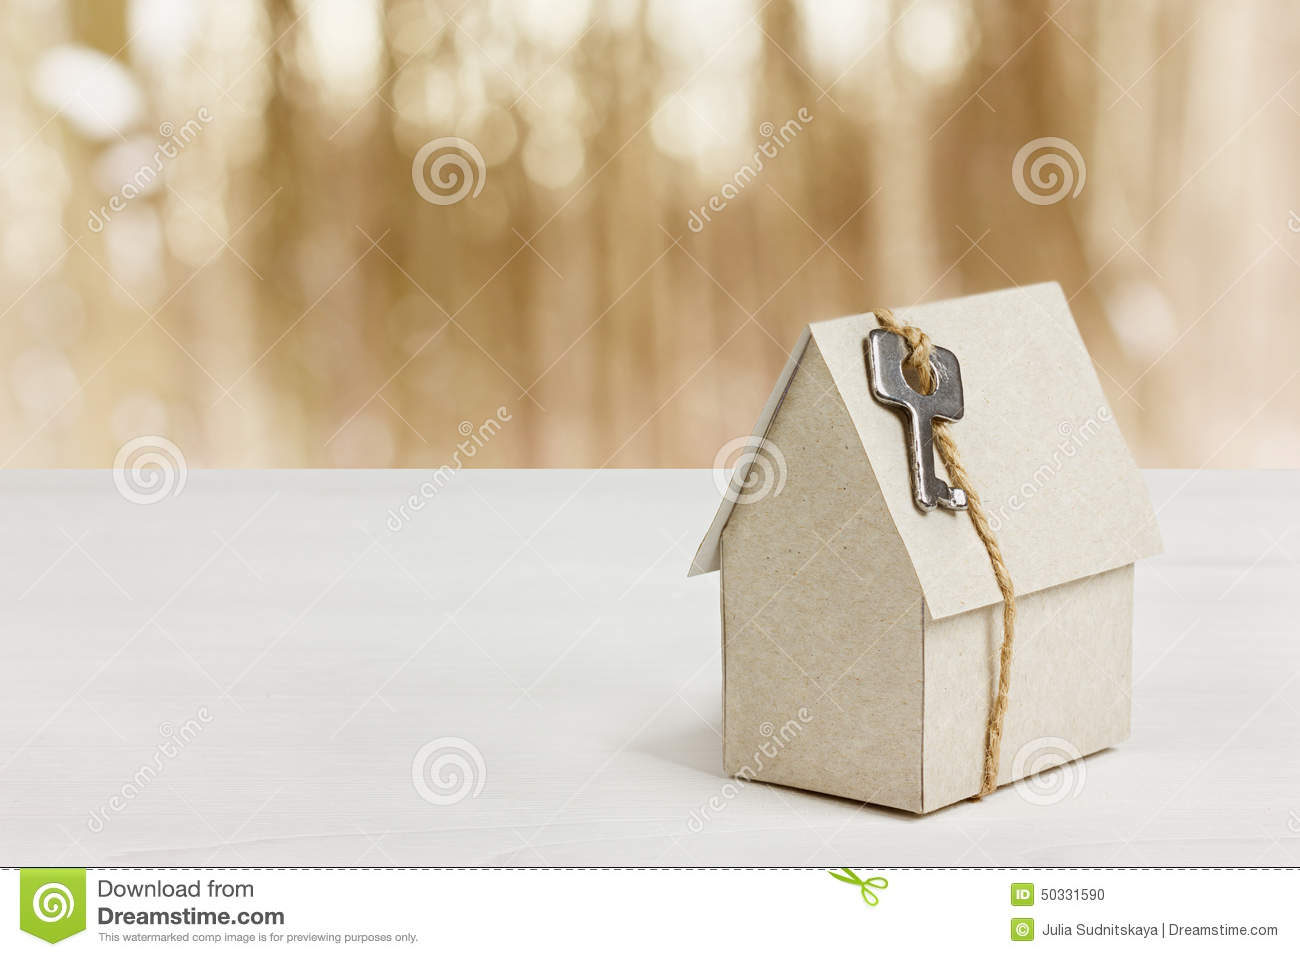 Model Of Cardboard House With Key Against Bokeh Background ...